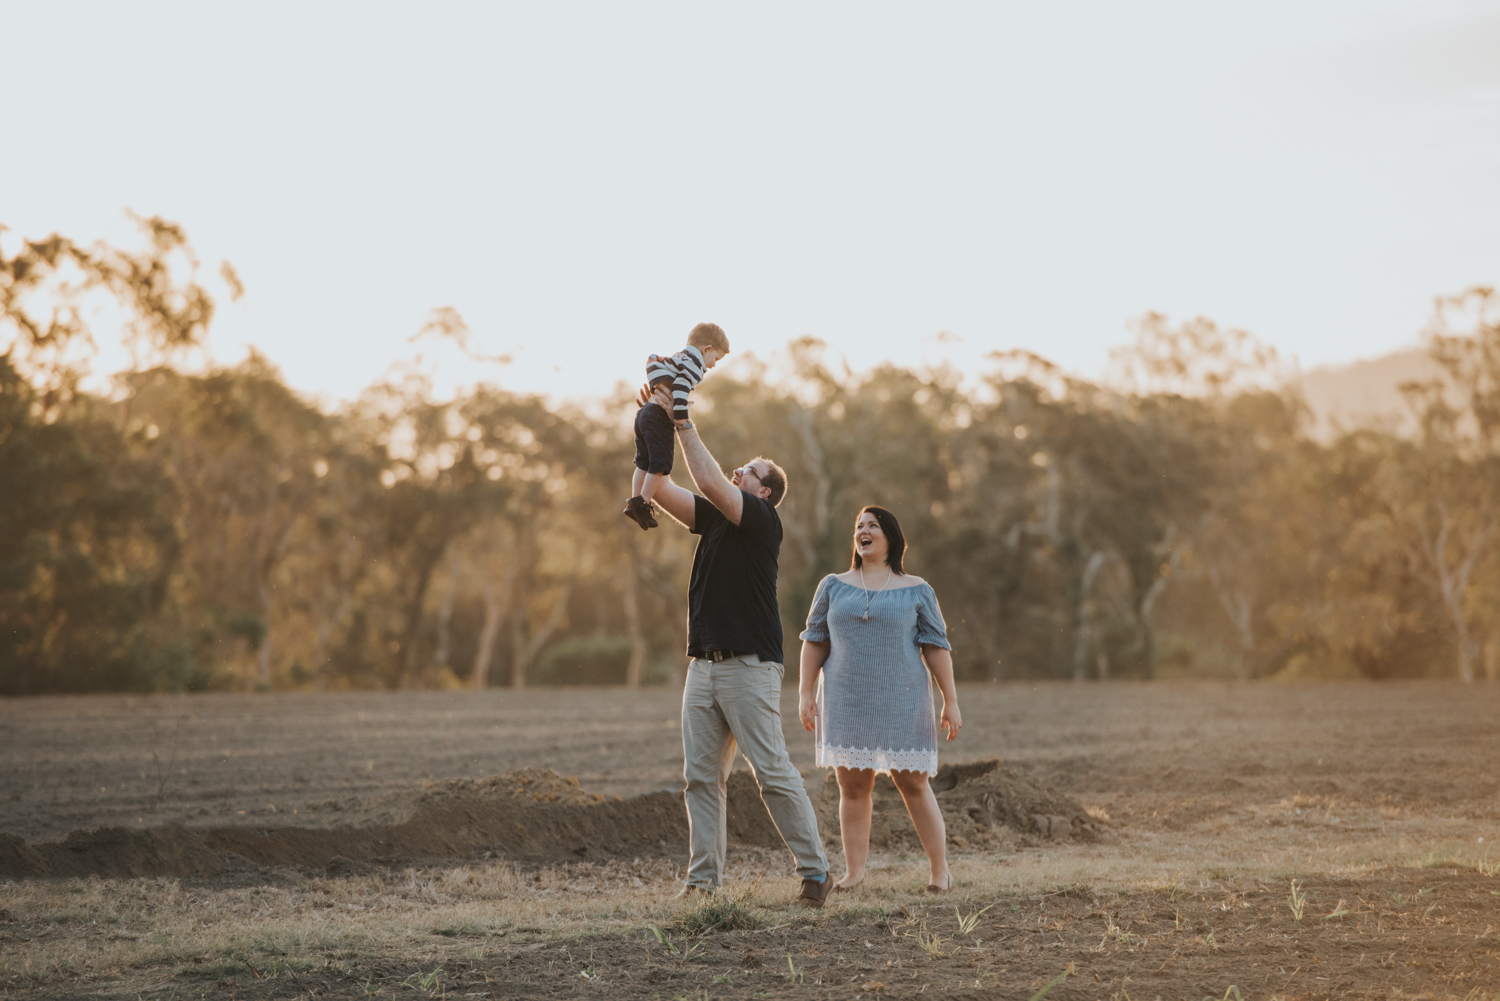 Brisbane Family Photography | Lifestyle Photographer-37.jpg